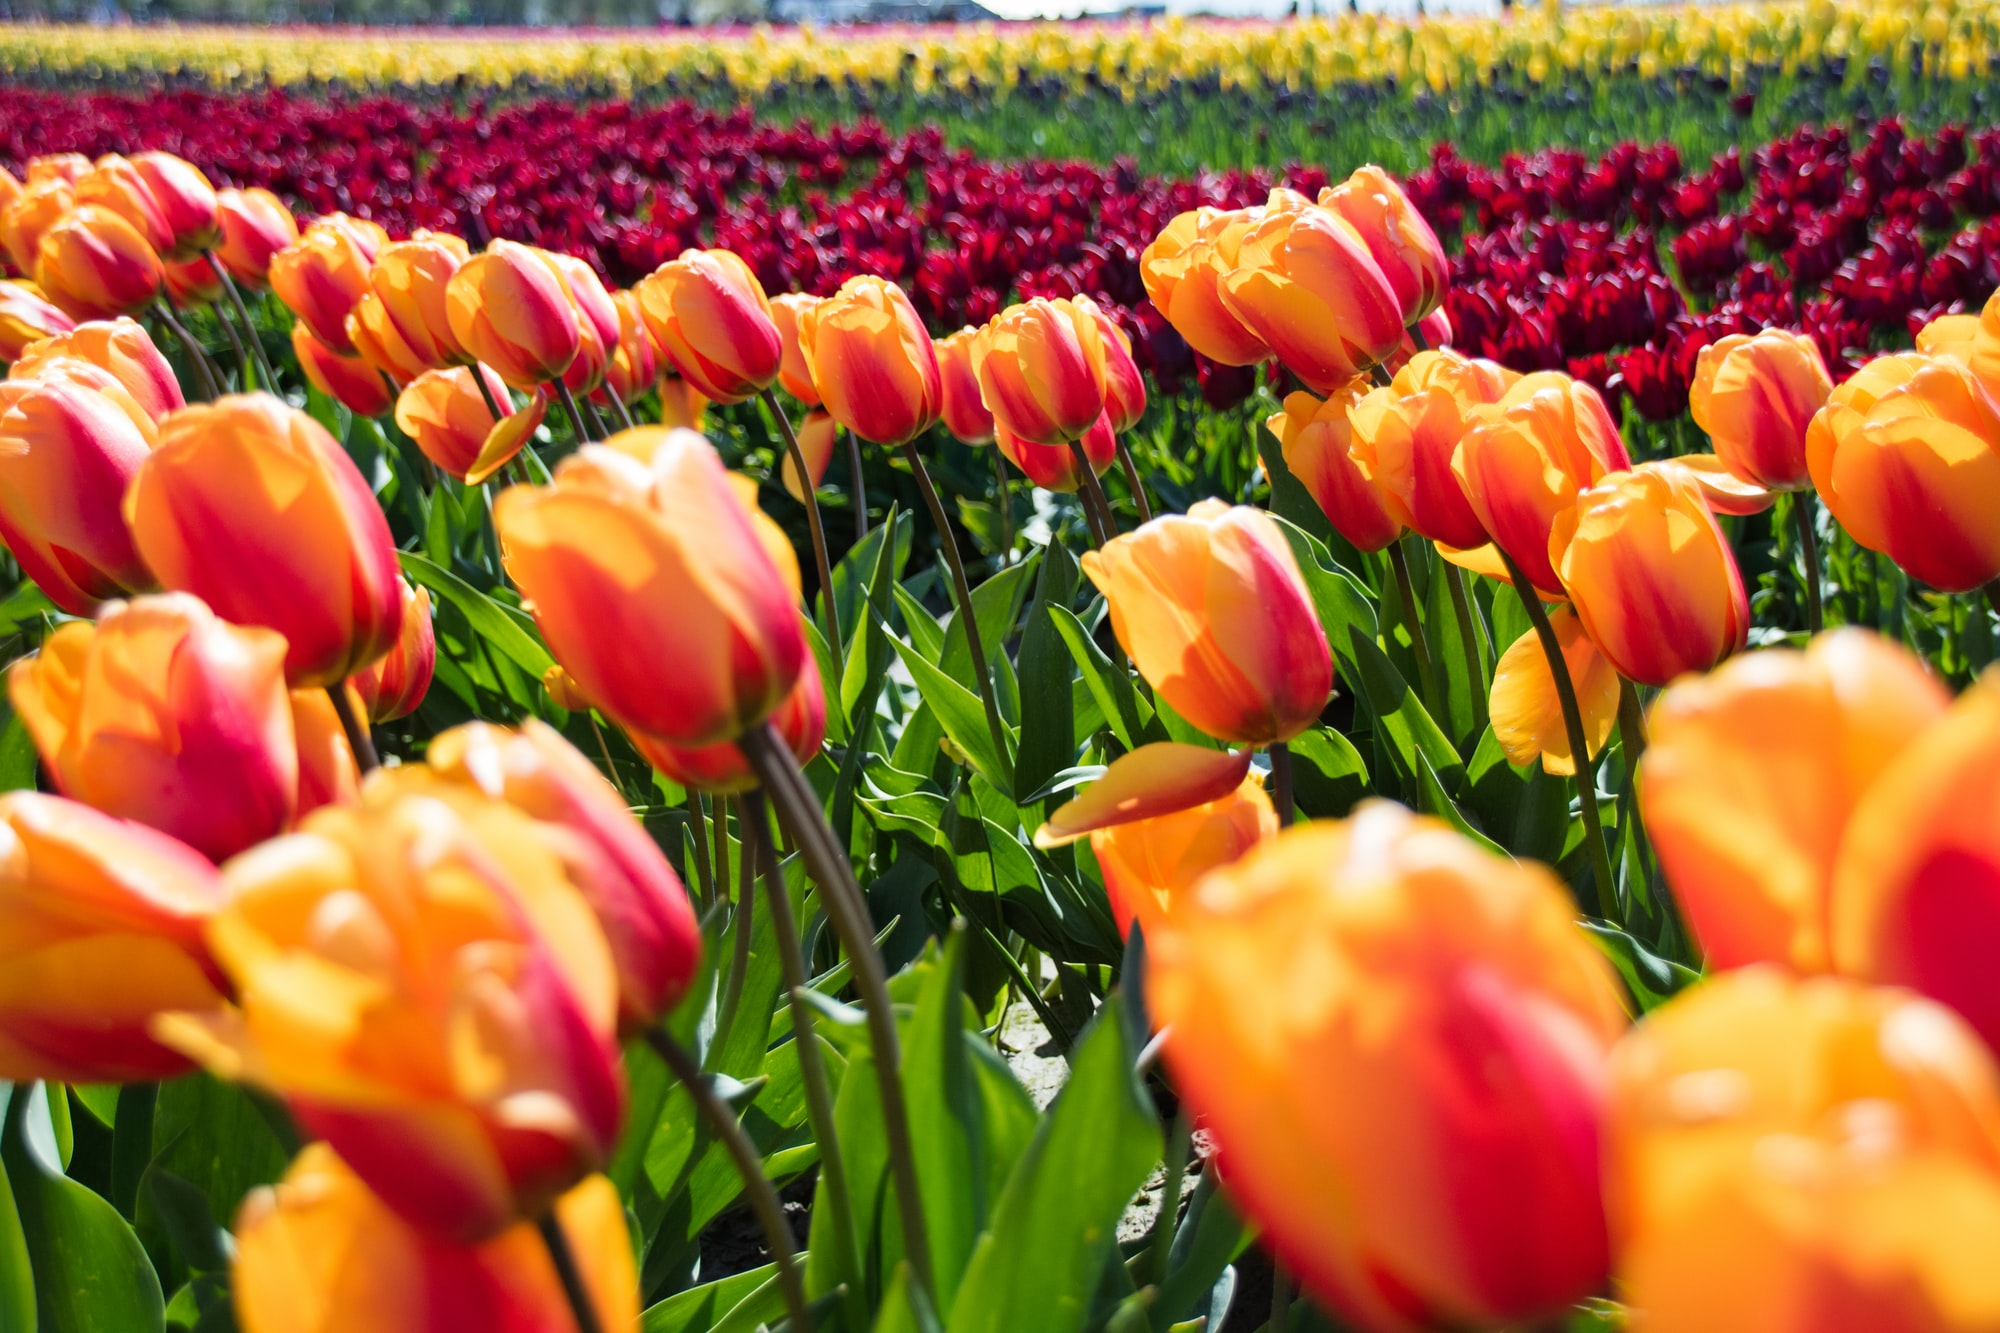 Taken at the Tulip Festival in Skagit Valley, Washington, on a warm, sunny yet very windy day. The colors in this photo give me a warm sense of happiness.